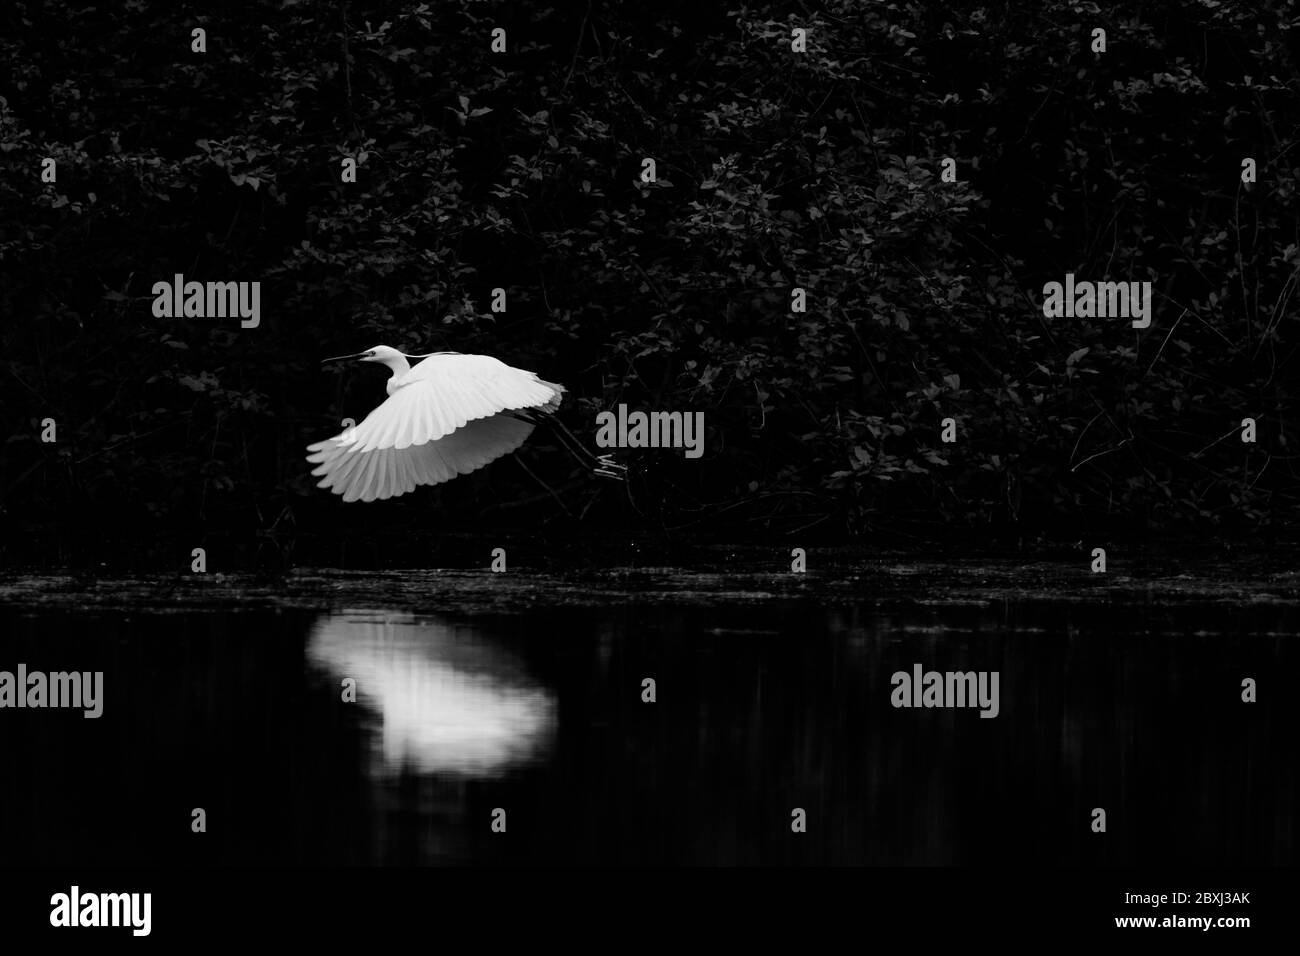 Reflections of bird wings on the water Stock Photo